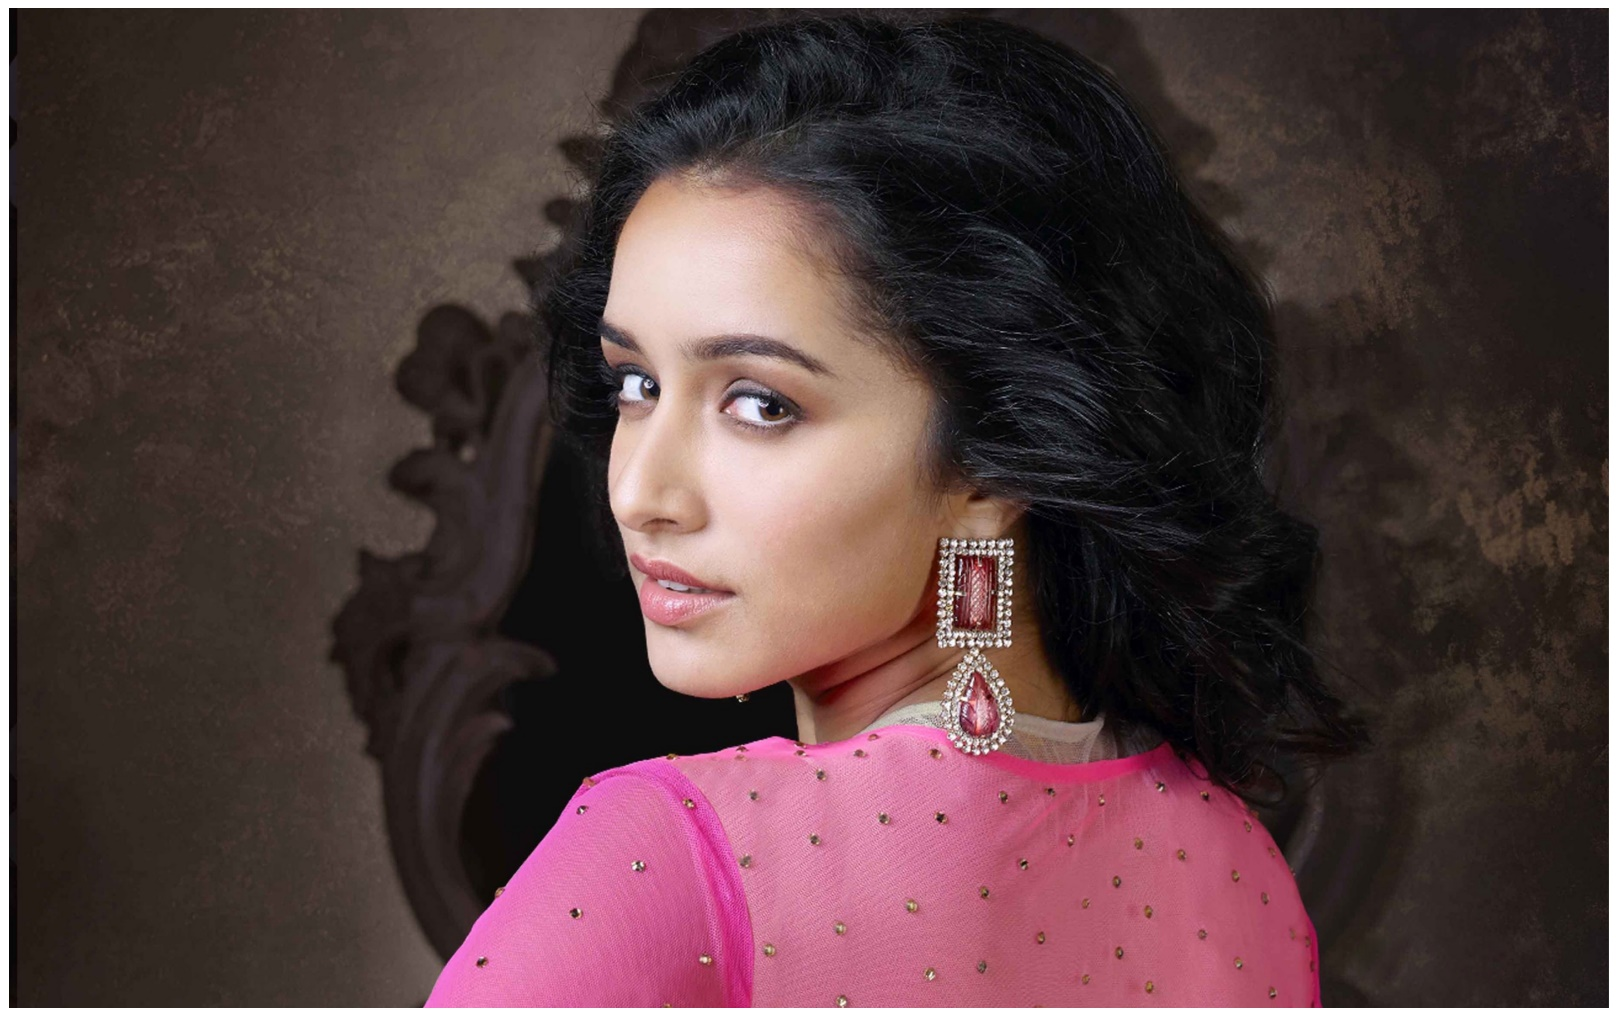 Best Shraddha kapoor HD images, posters